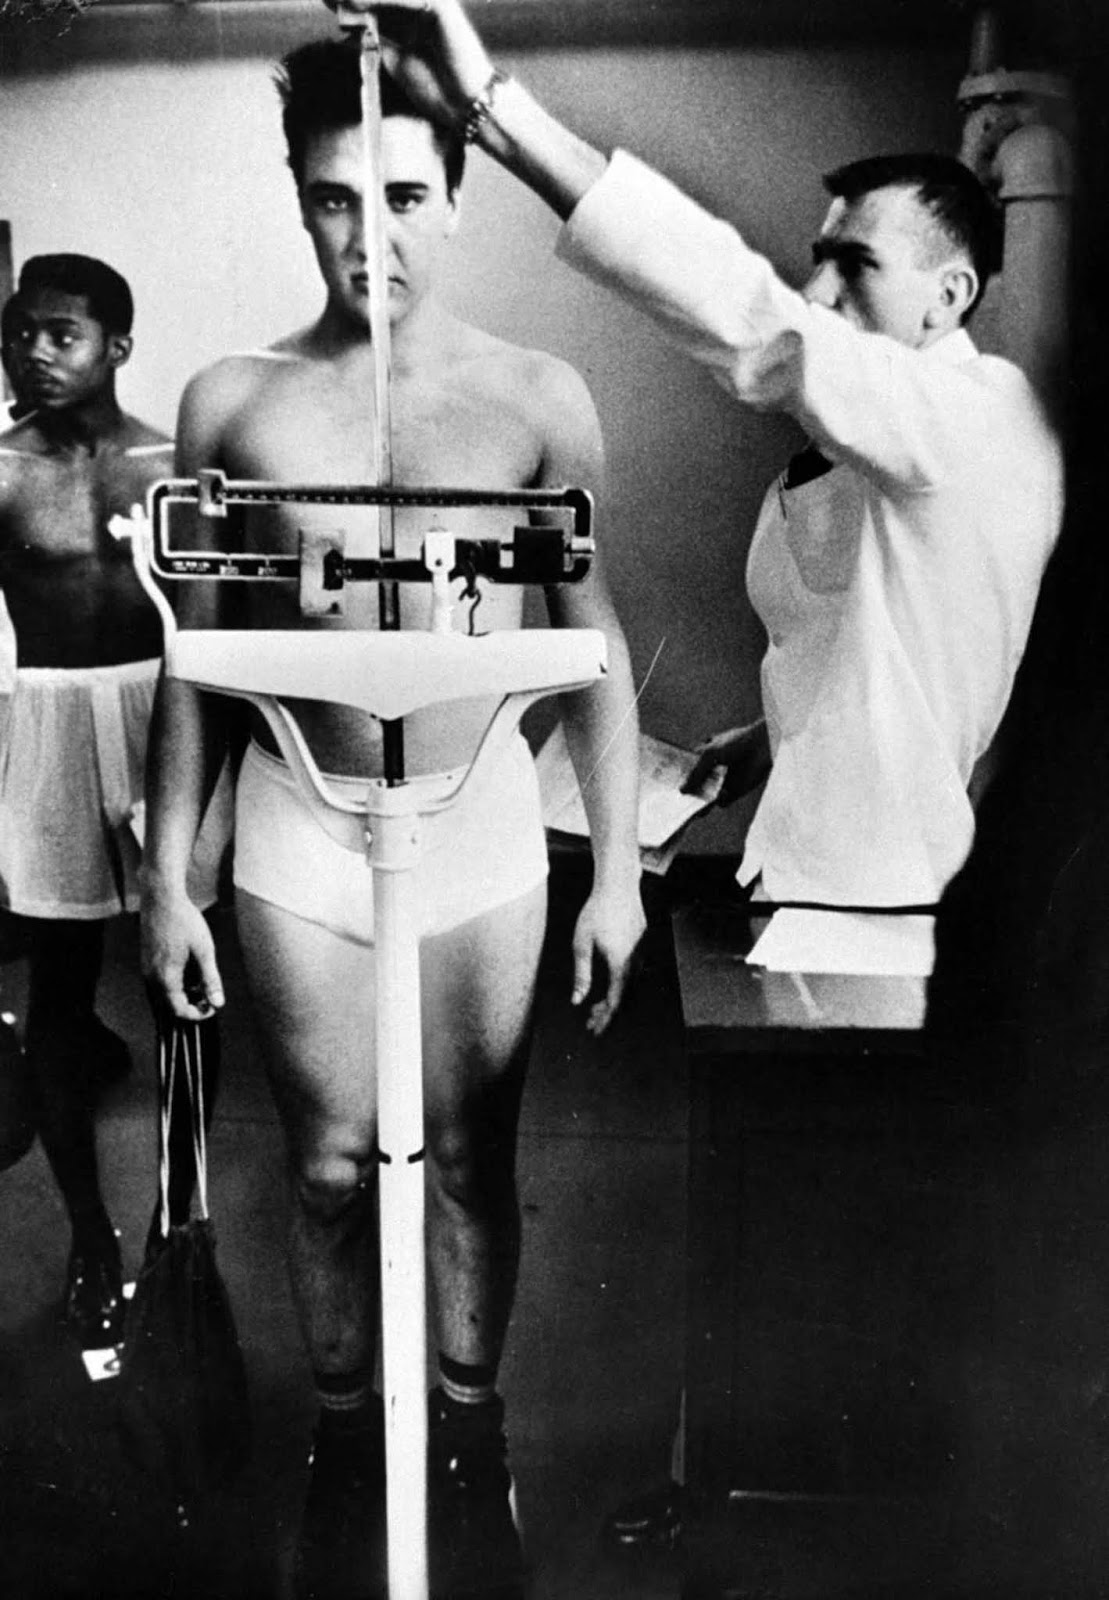 Presley clad only in his skivvies as he stands on a scale while an Army doctor measures his height at a pre-induction physical examination at Kennedy Veterans Hospital.